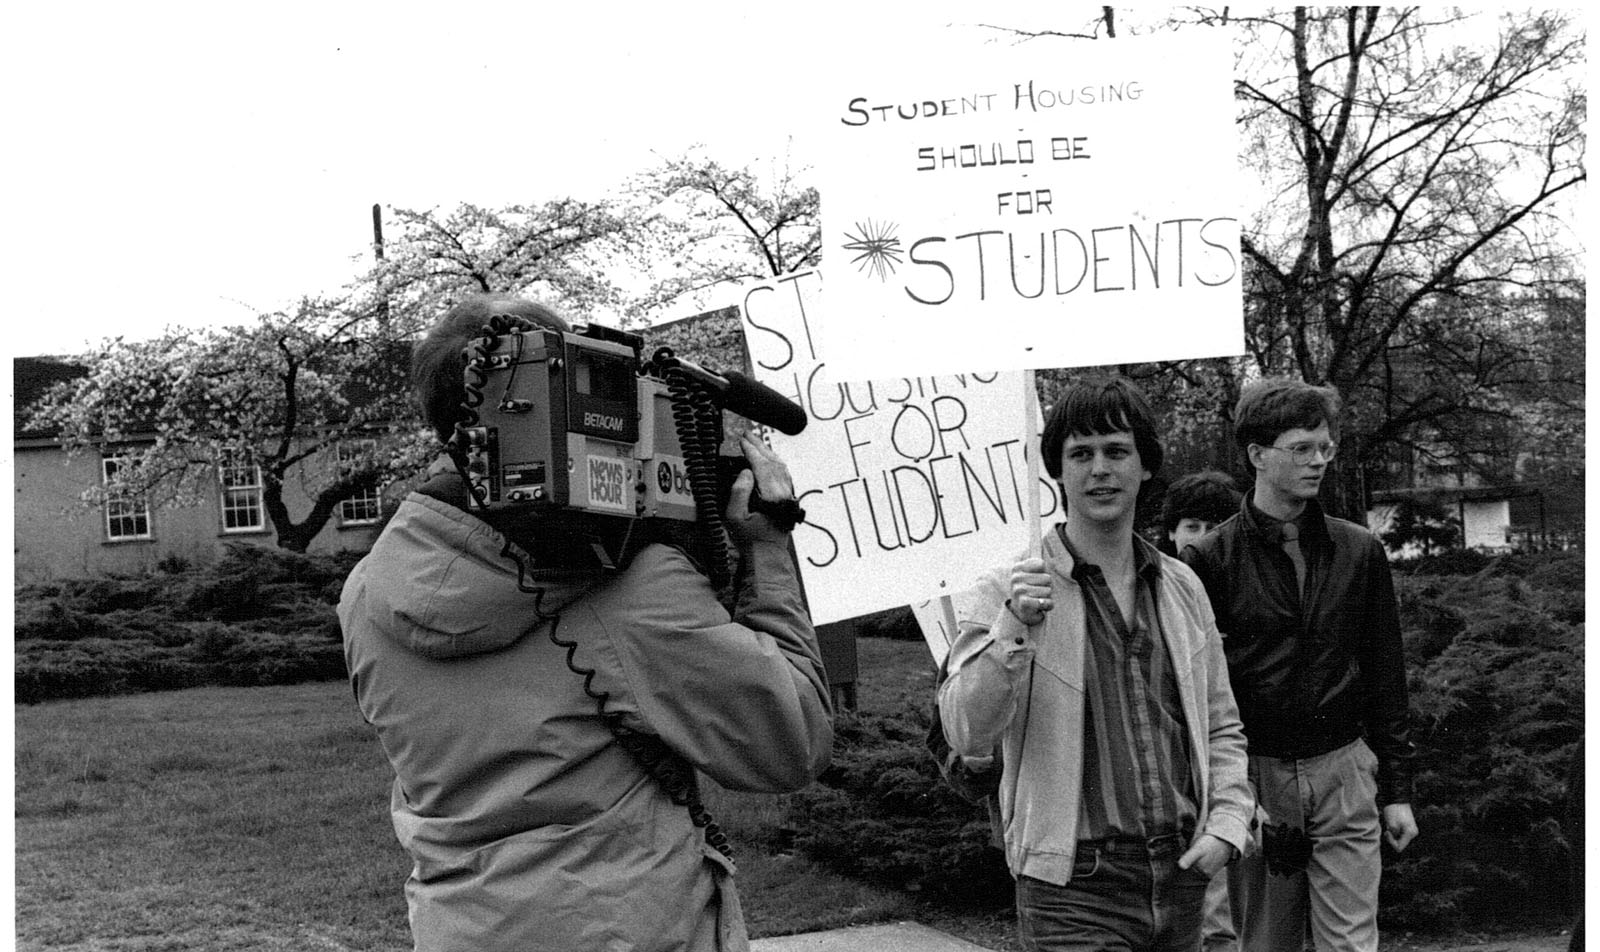 Students protest the development of private housing on campus in this undated photo.